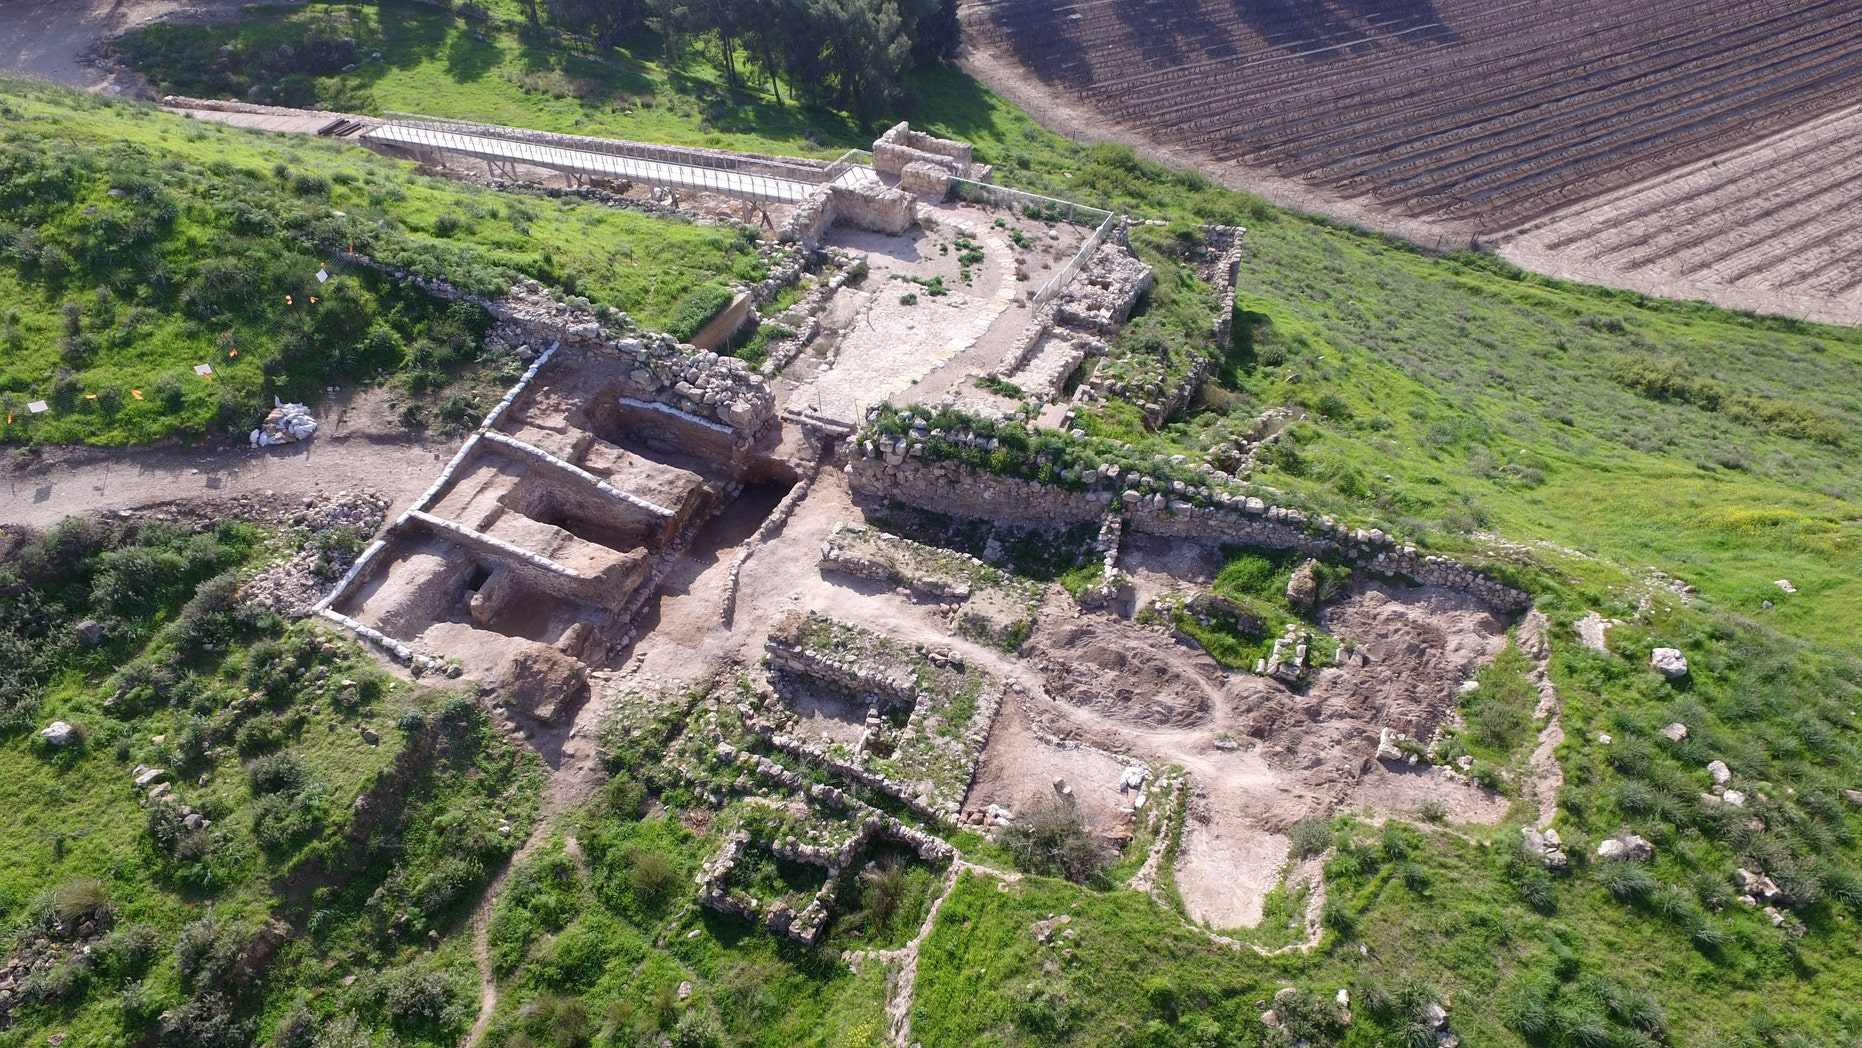 The Tel Lachish National Park and the gate structure (left) that was exposed. (Photographic credit: Guy Fitoussi, courtesy of the Israel Antiquities Authority).